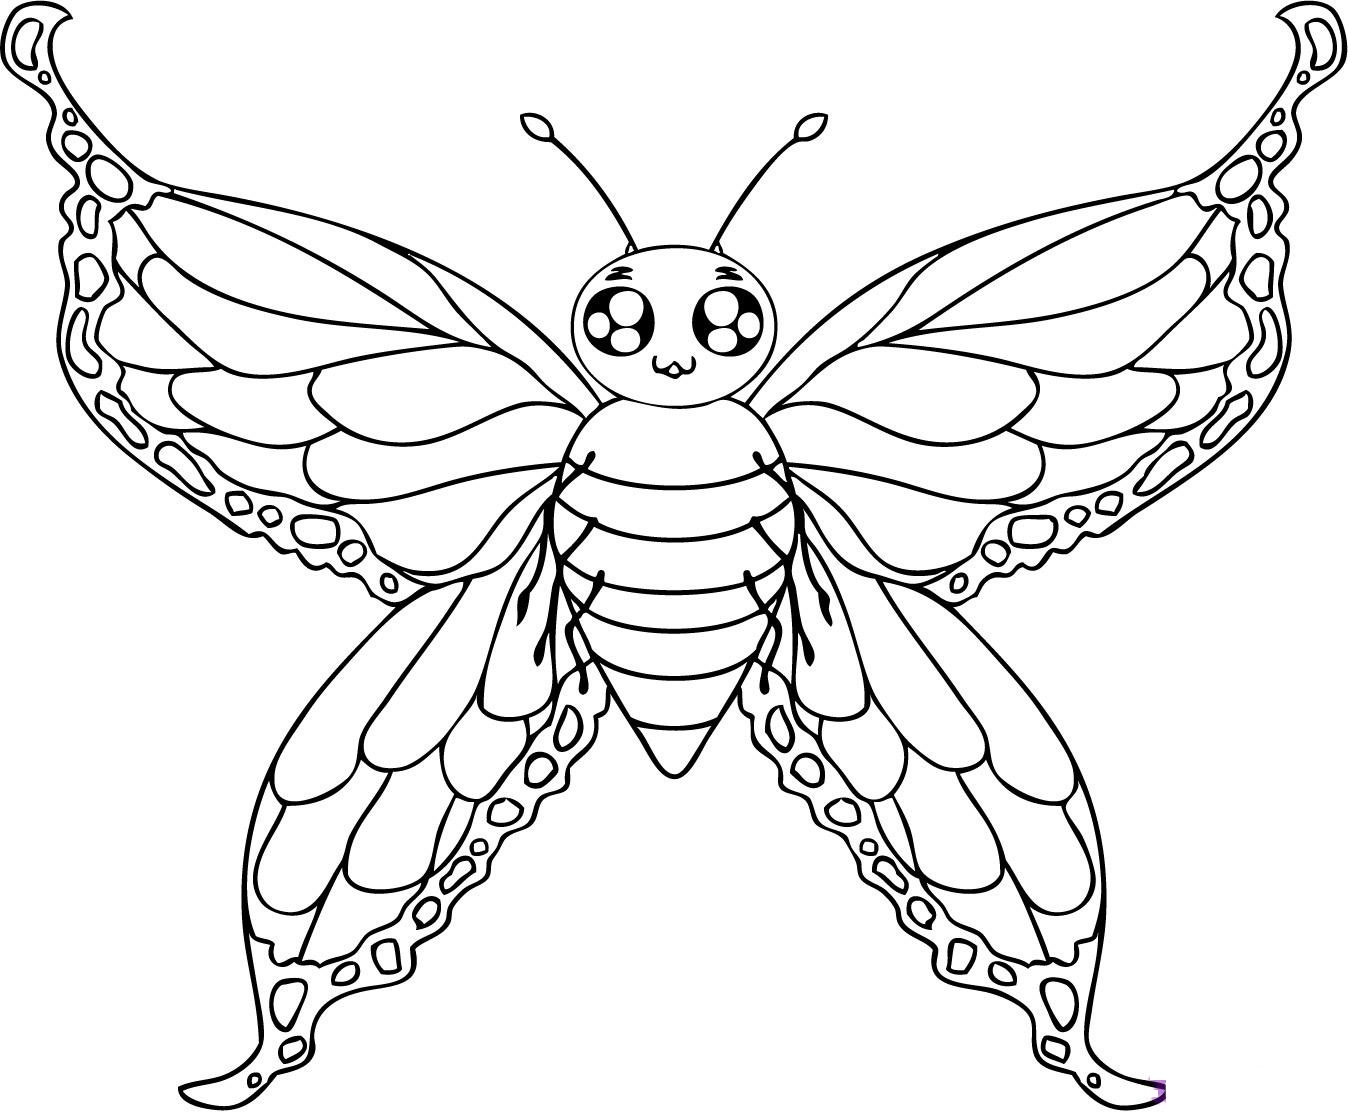 1348x1112 Coloring Pages Coloring Pages Draw Butterflies Coloring